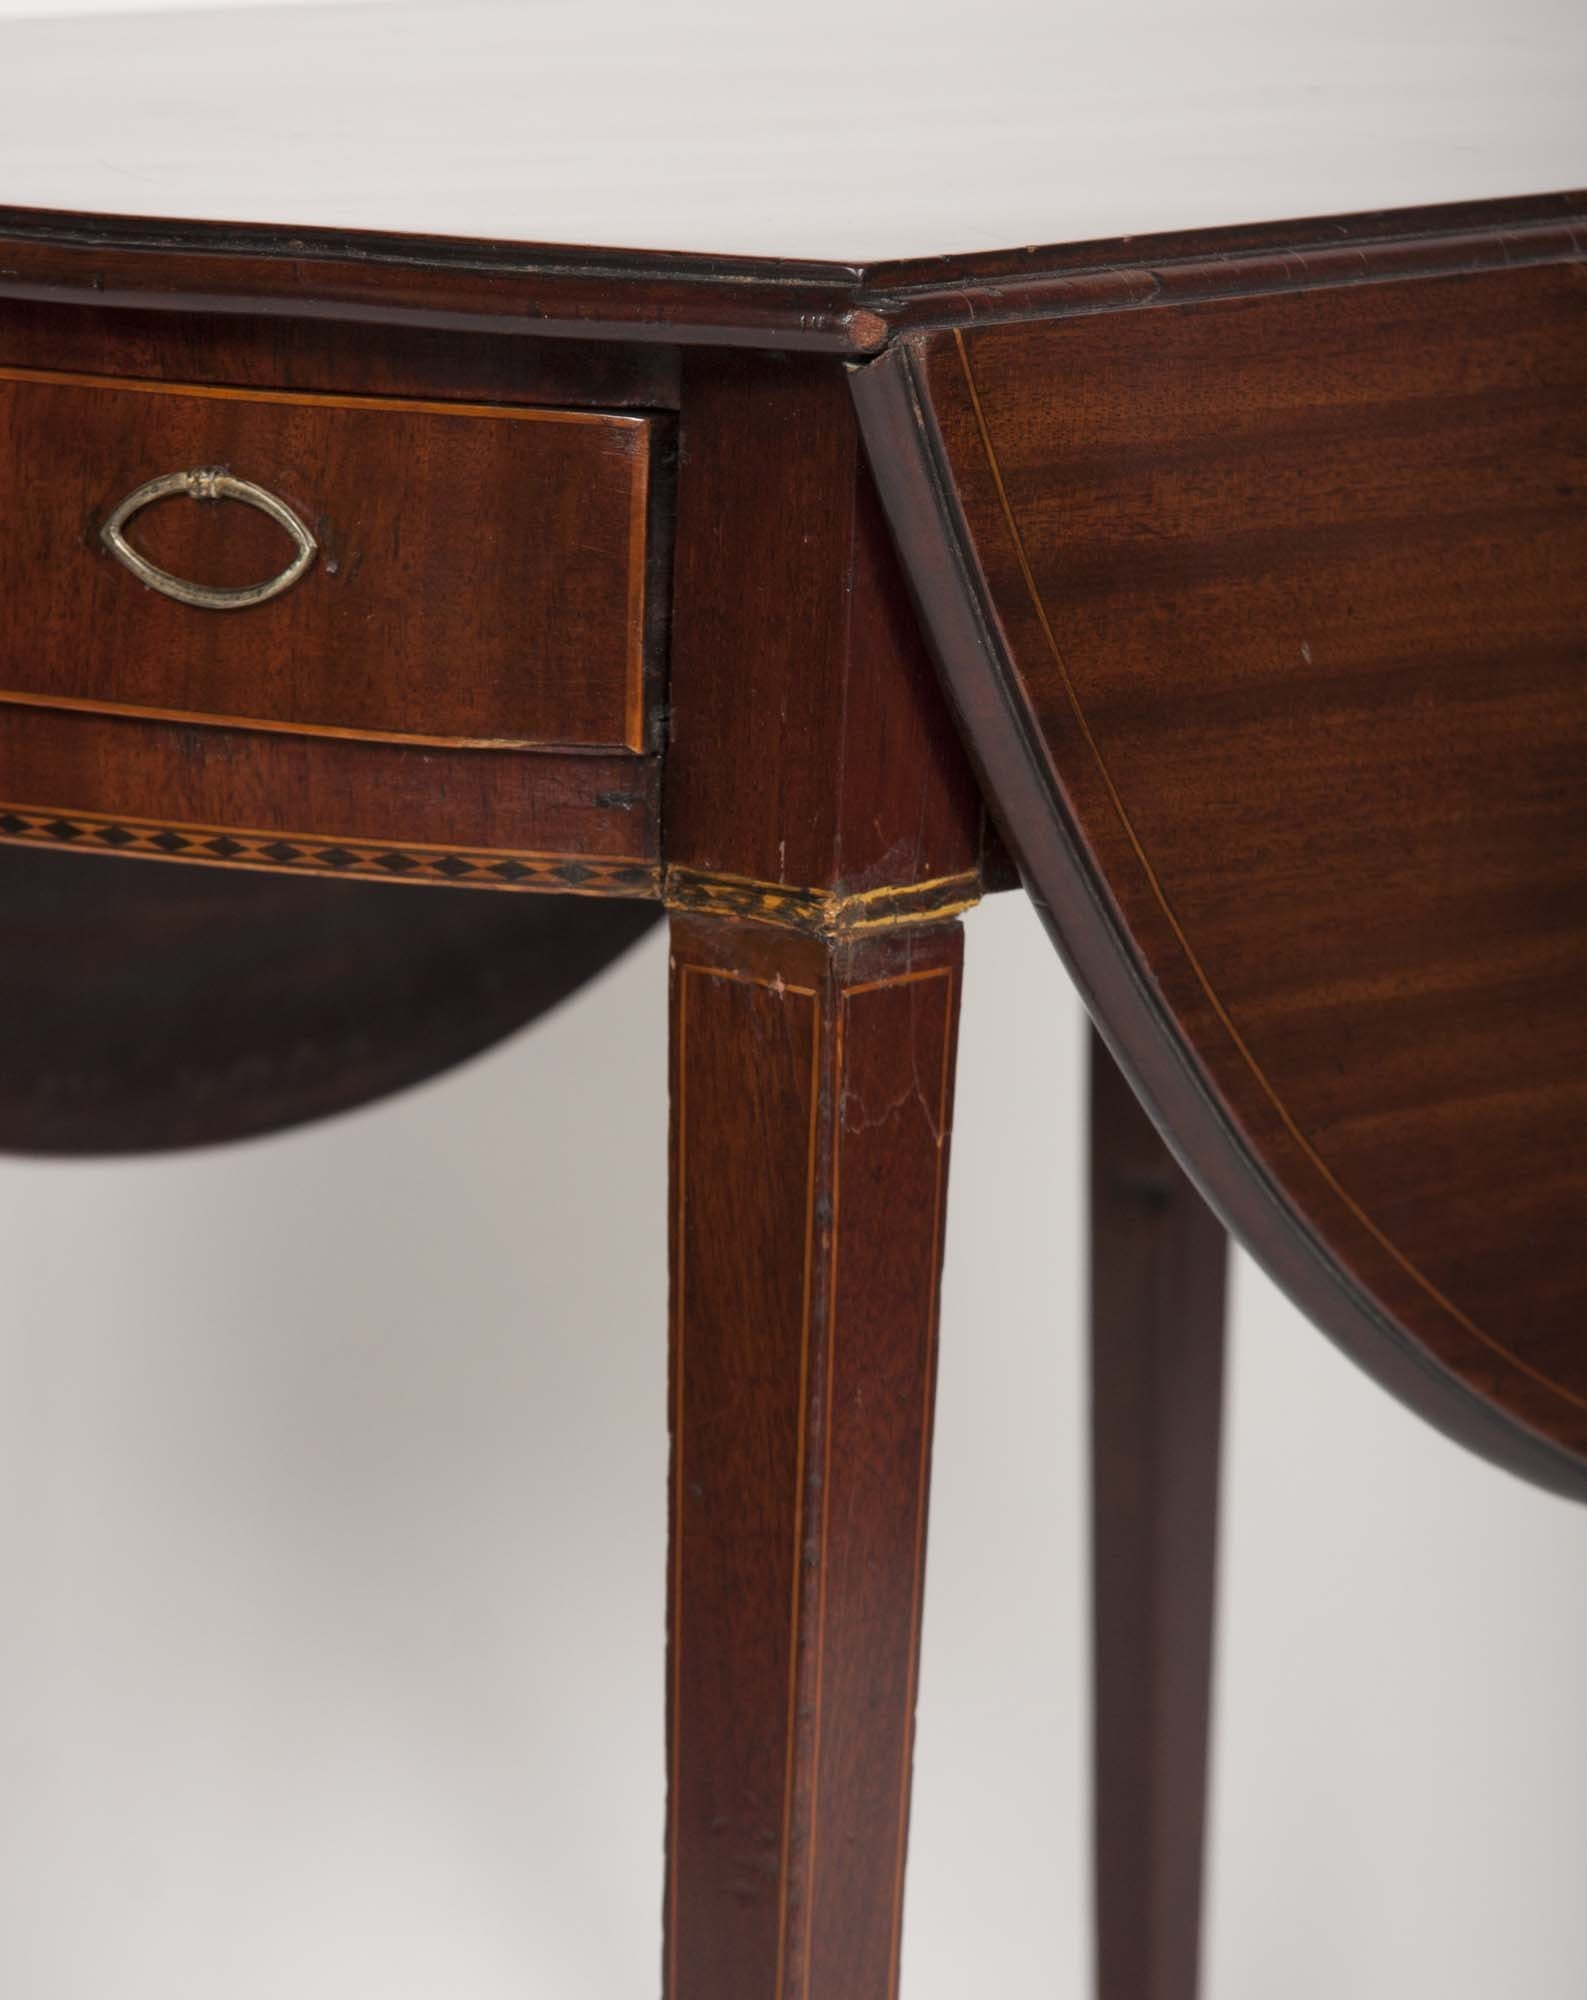 Mahogany Hepplewhite Pembroke Table